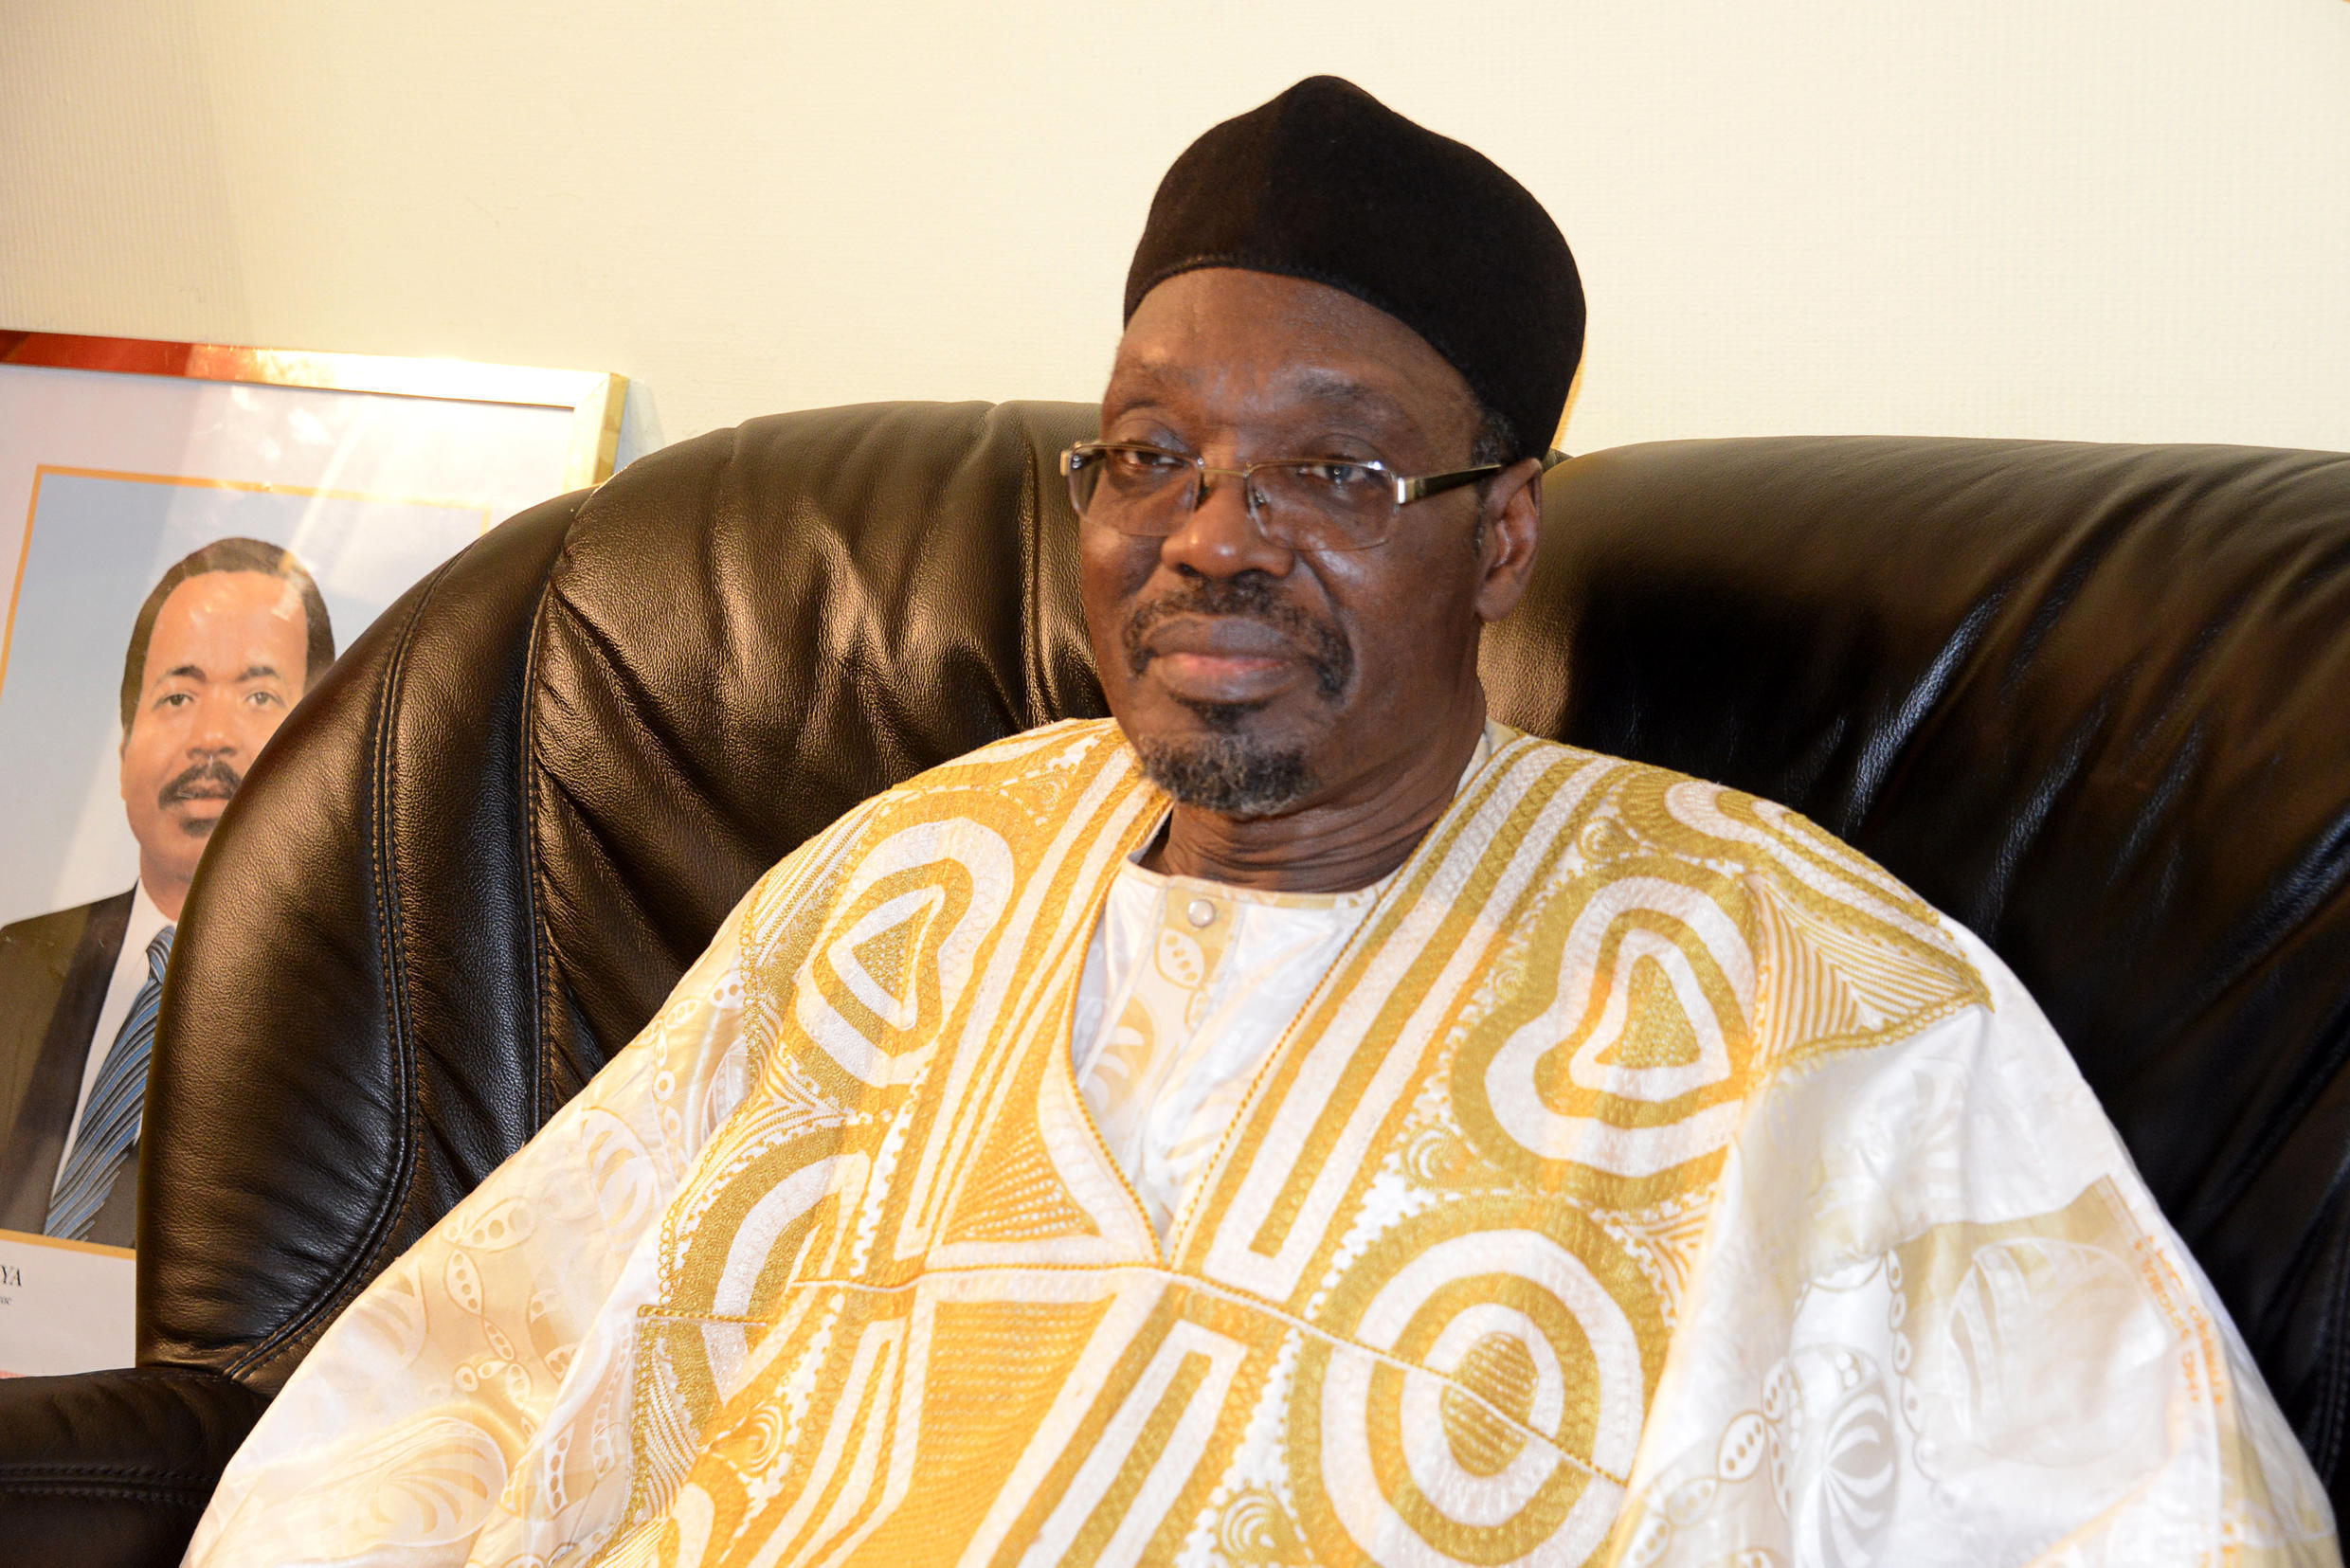 Issa Tchiroma Bakary speaks to journalists in October 2014.